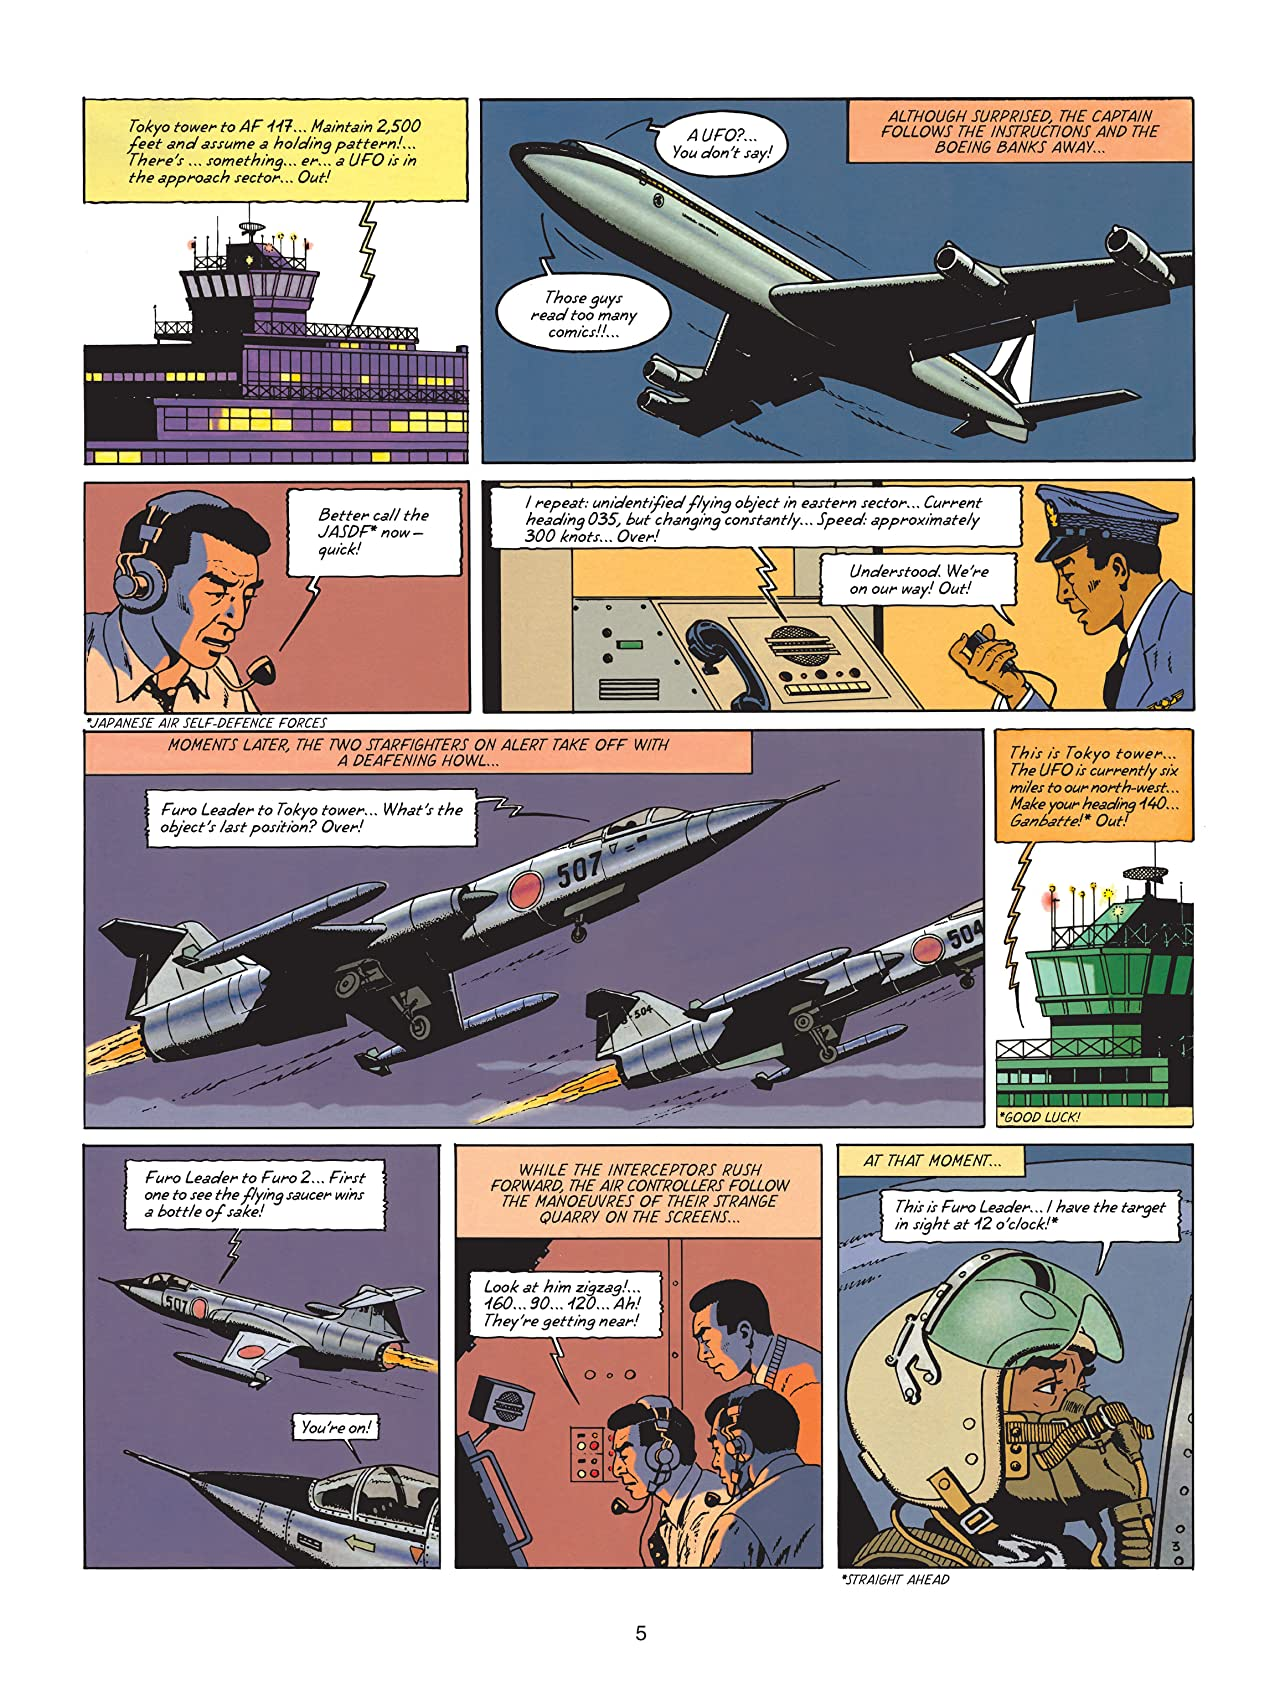 Blake & Mortimer Vol. 22: Professor Sato's Three Formulae (Part 1)